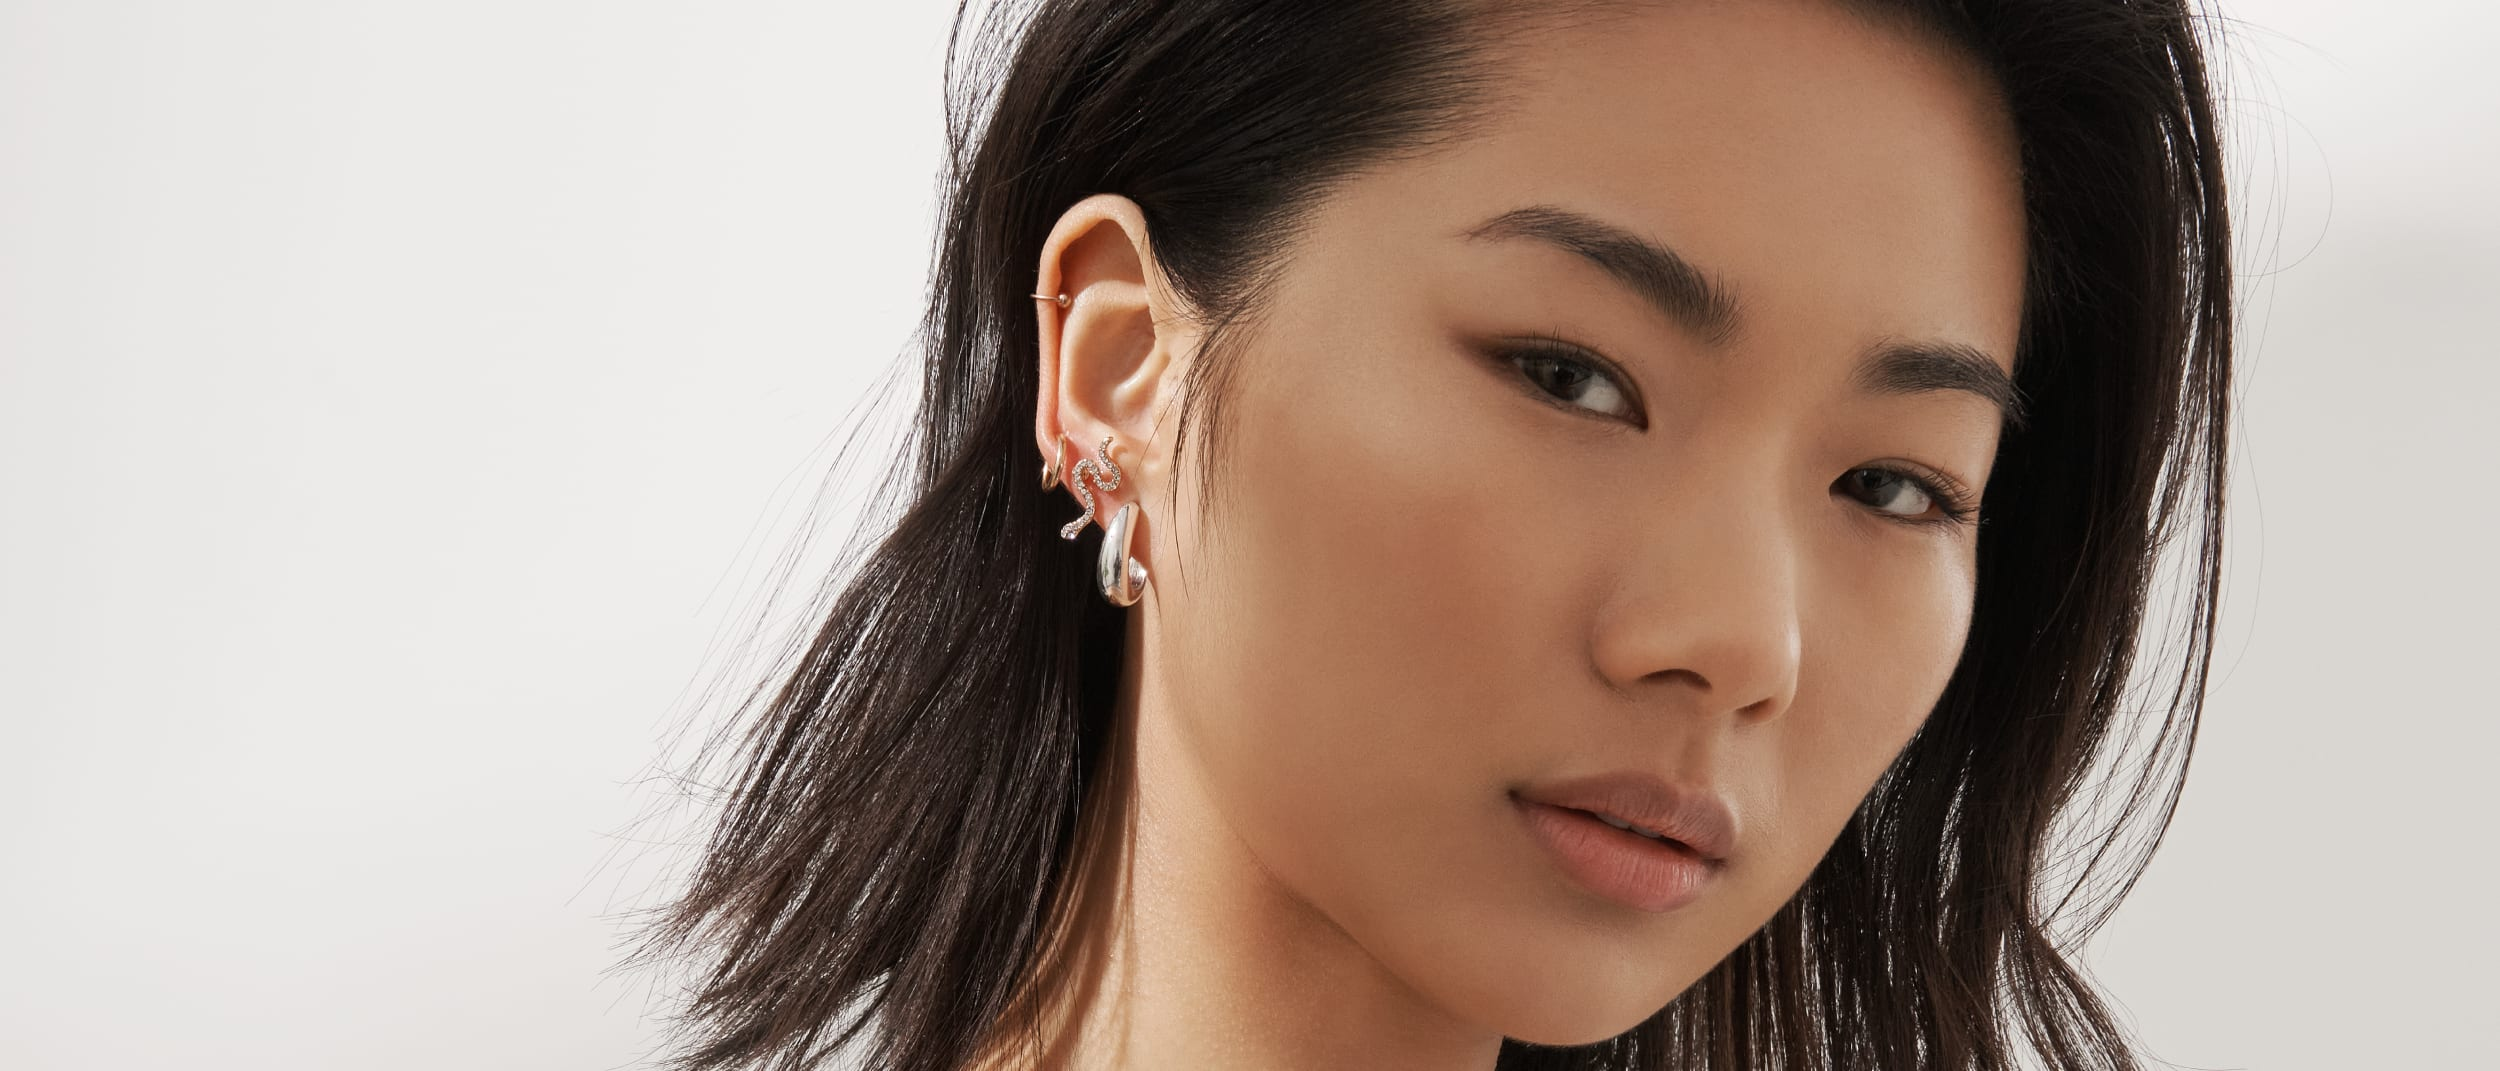 Hairhouse: Piercing services are back